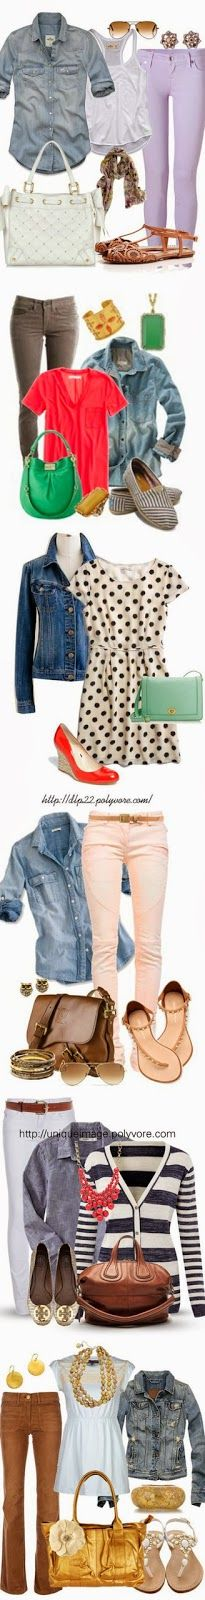 New beautiful fall outfits collection